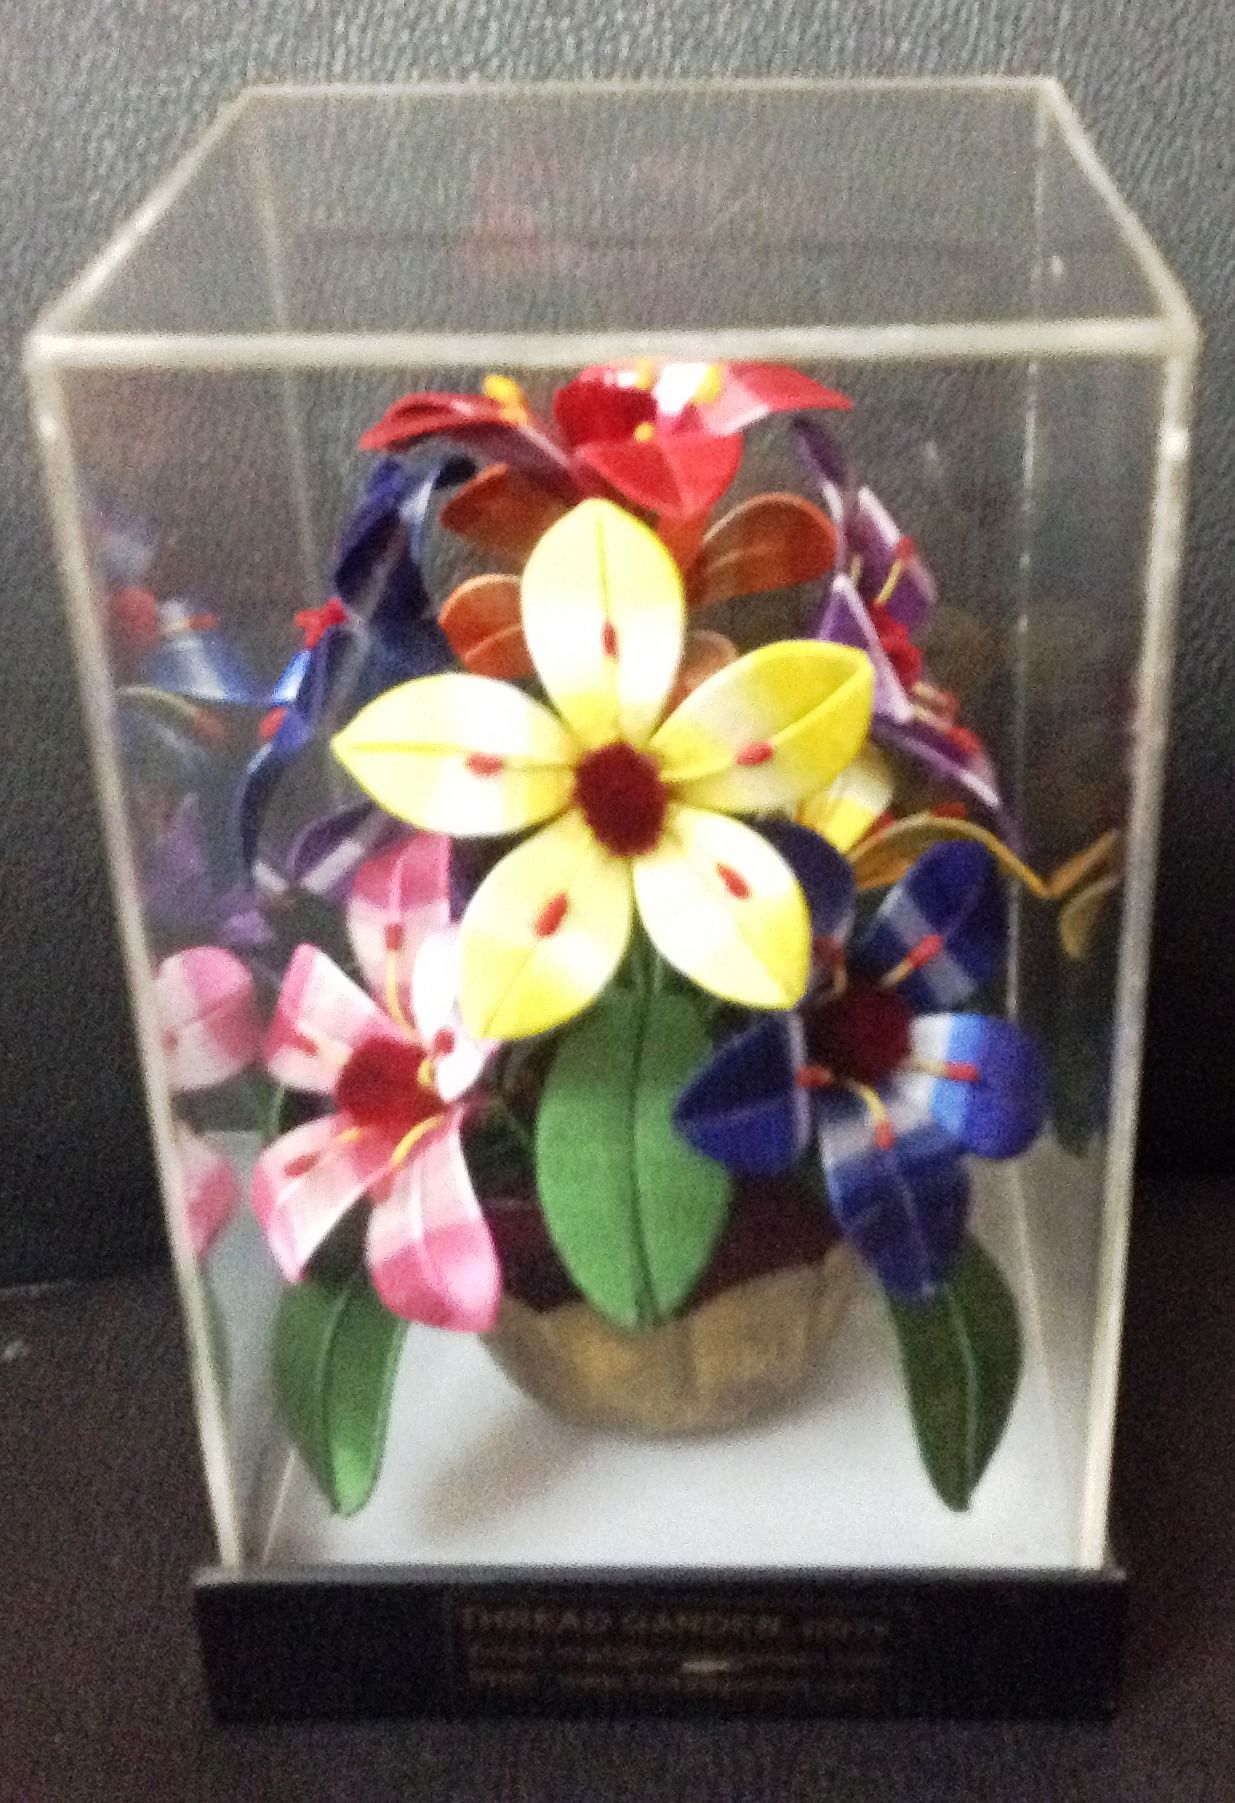 Encased in glass, flowers sold at the sales counter Photo credit: Aparna Menon